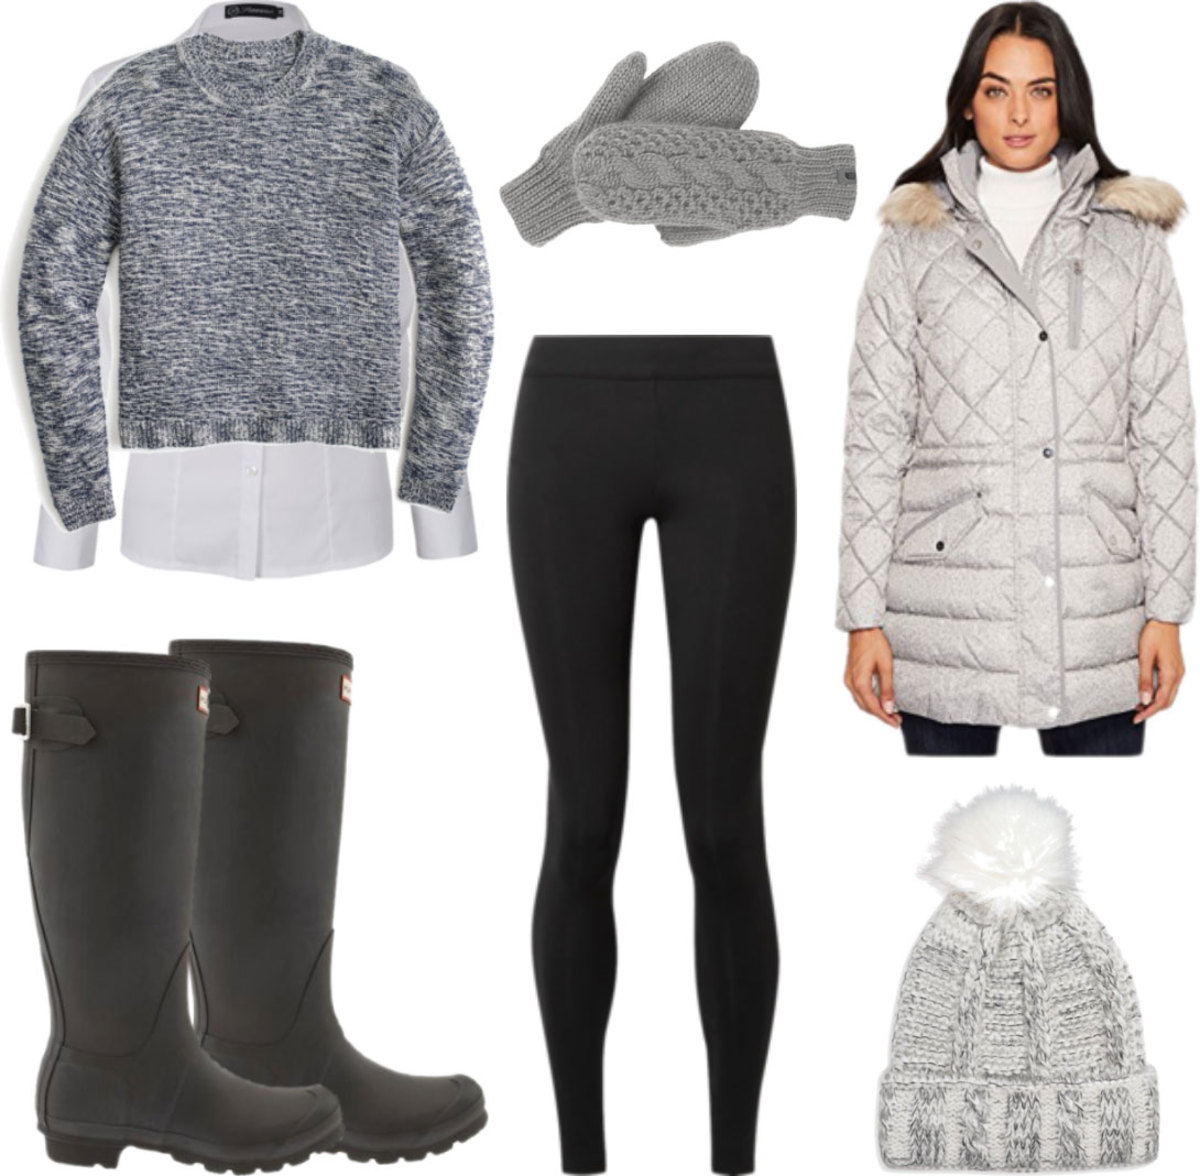 black-leggings-white-collared-shirt-gloves-grayl-sweater-layer-black-shoe-boots-rain-wellies-grayl-jacket-coat-parka-fall-winter-outfit-weekend.jpg